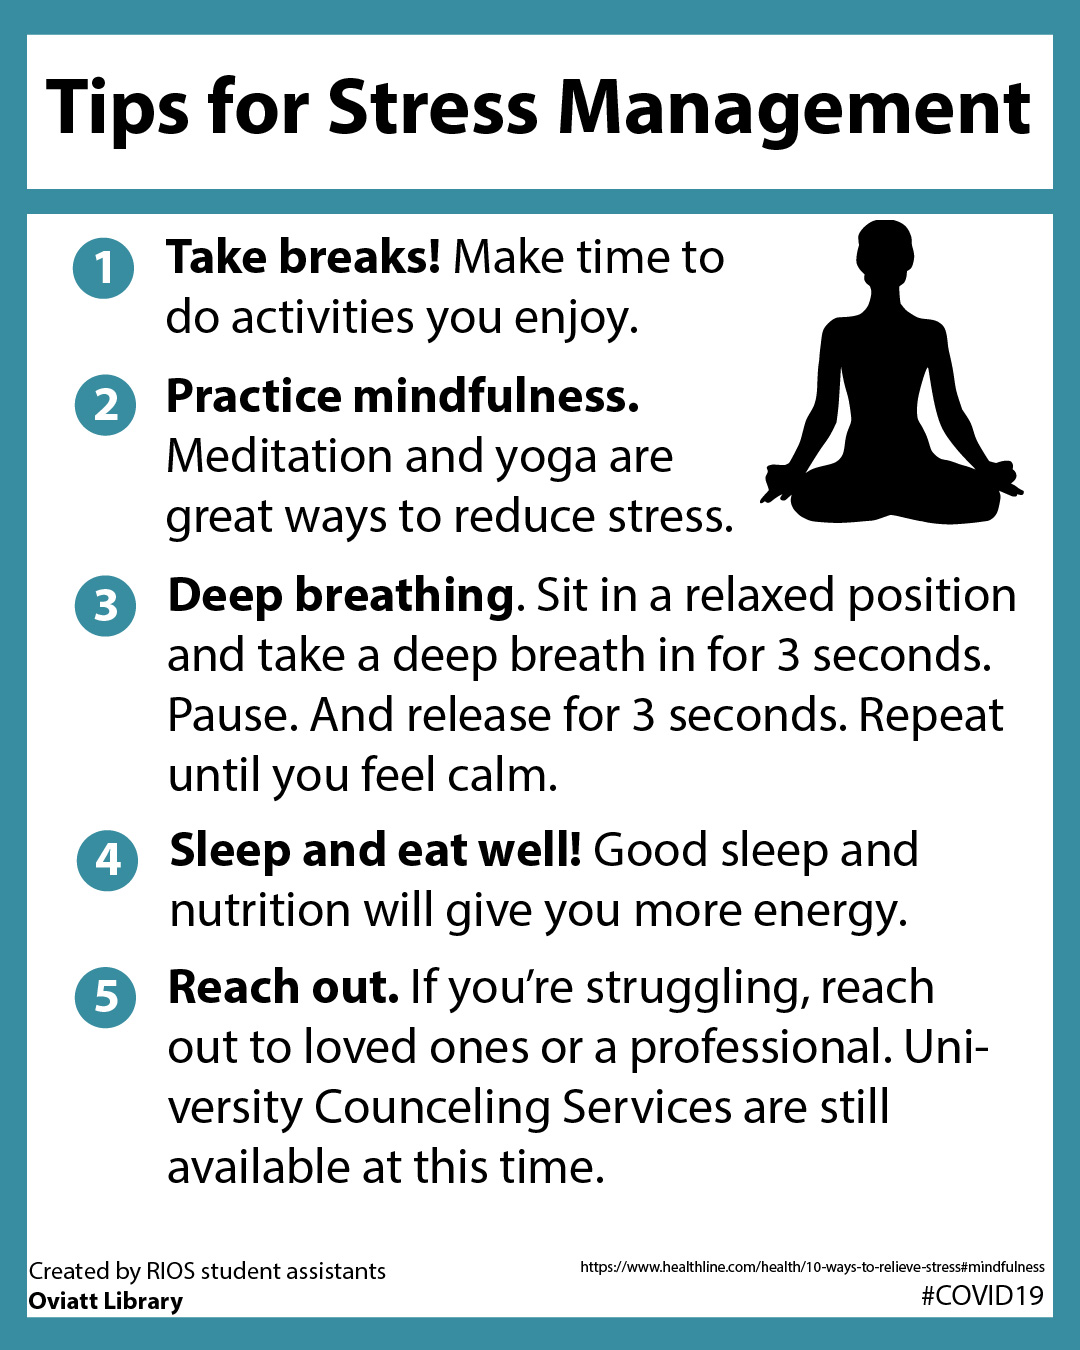 Tips for Stress Management